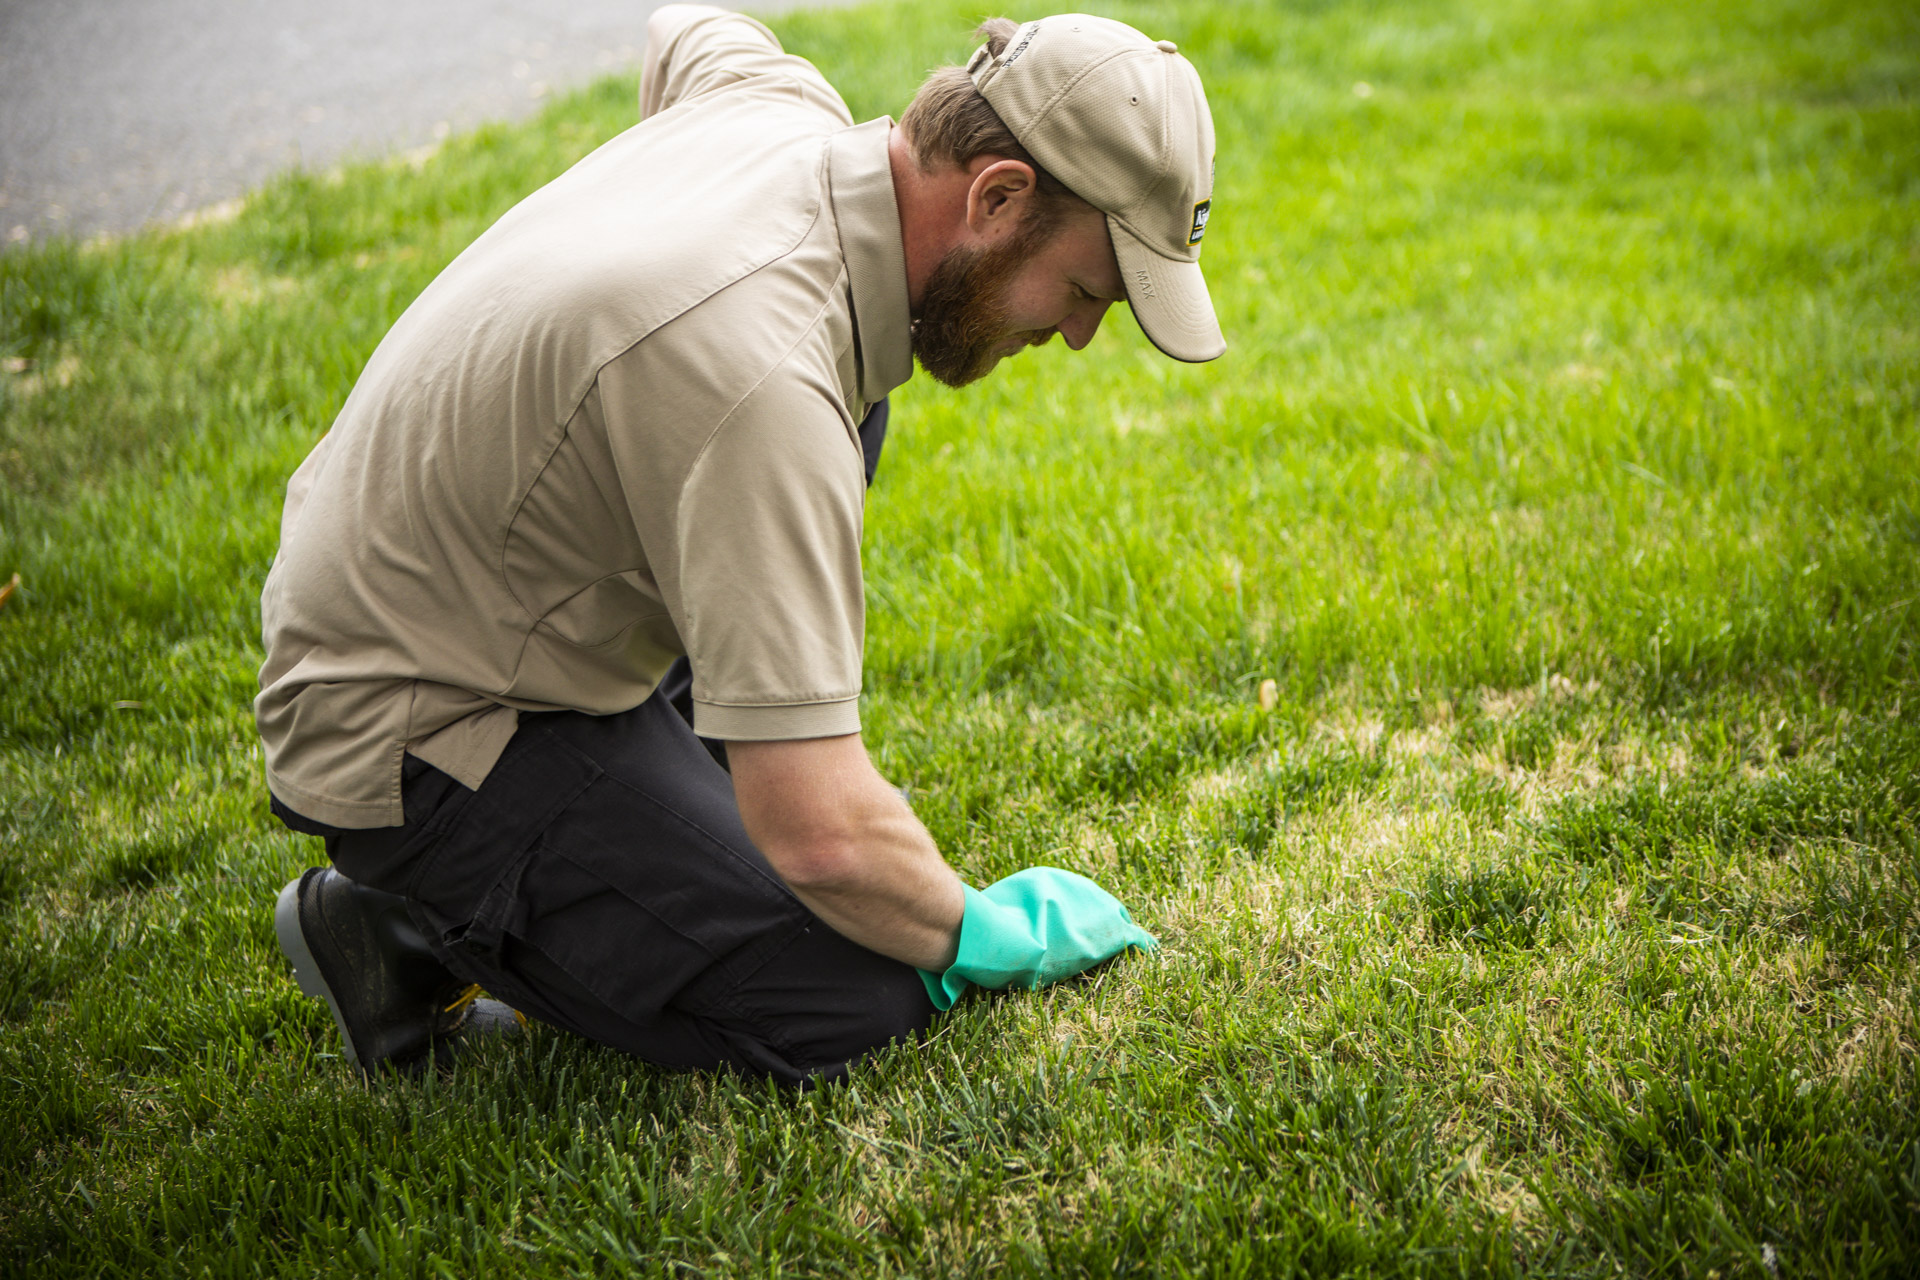 Lawn technician inspecting lawn disease in Northern Virginia